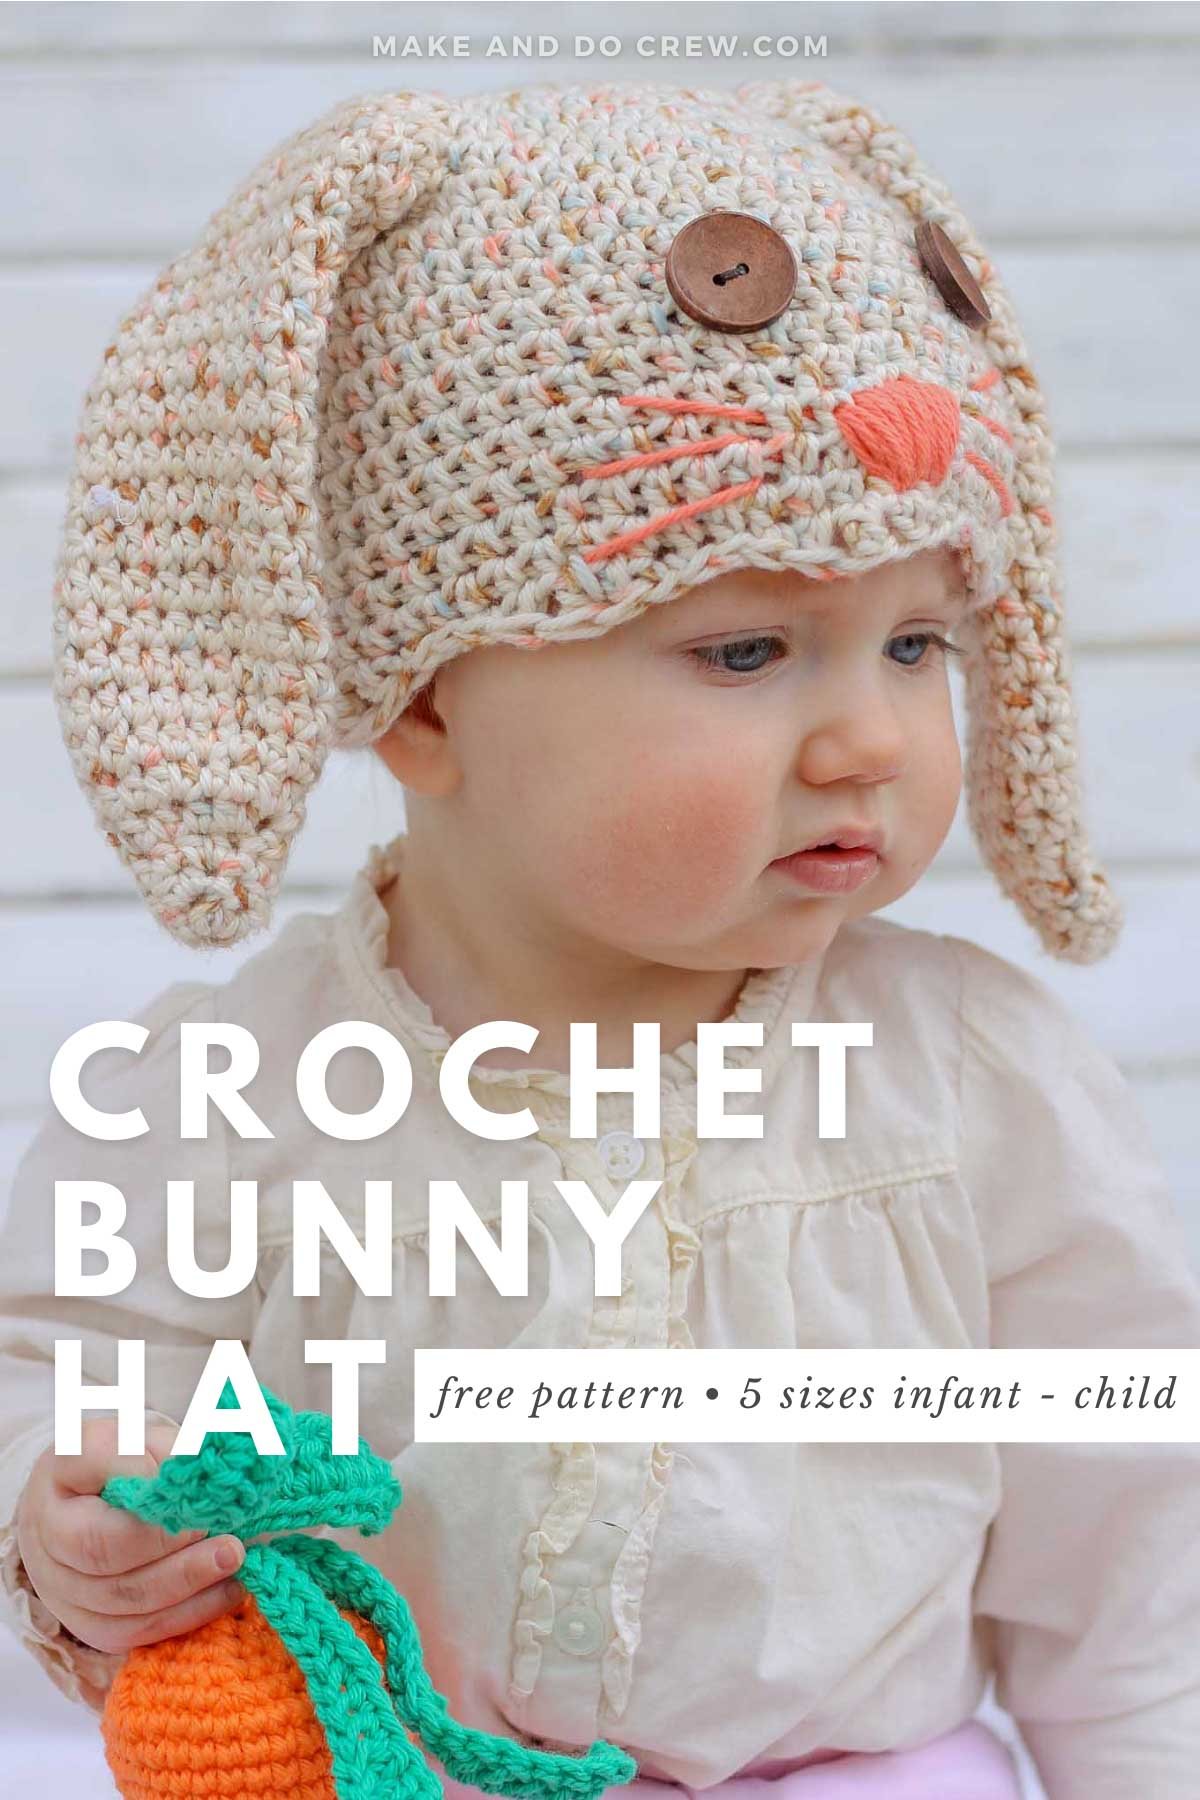 A chubby-cheeked baby wearing a crochet bunny hat complete with button eyes and sweet whiskers.